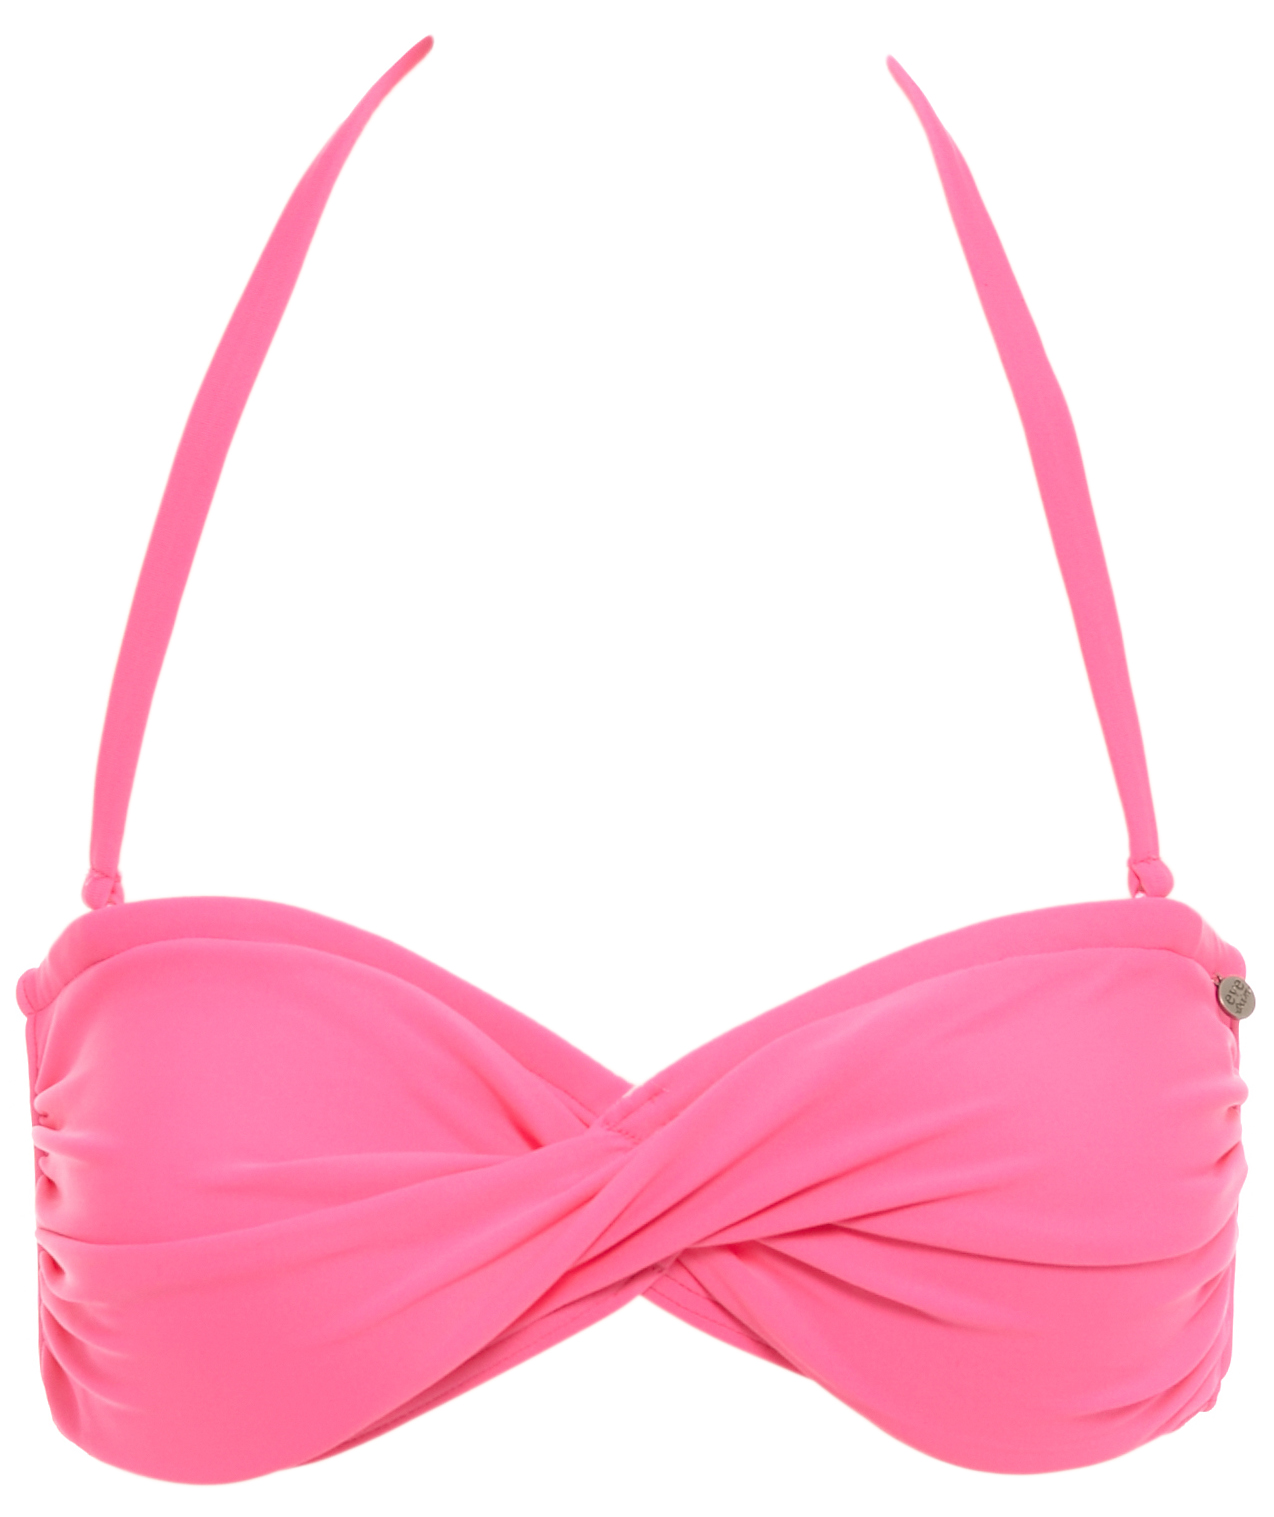 Bikini Top Png - Bikini Top Png (107+ images in Collection) Page 1